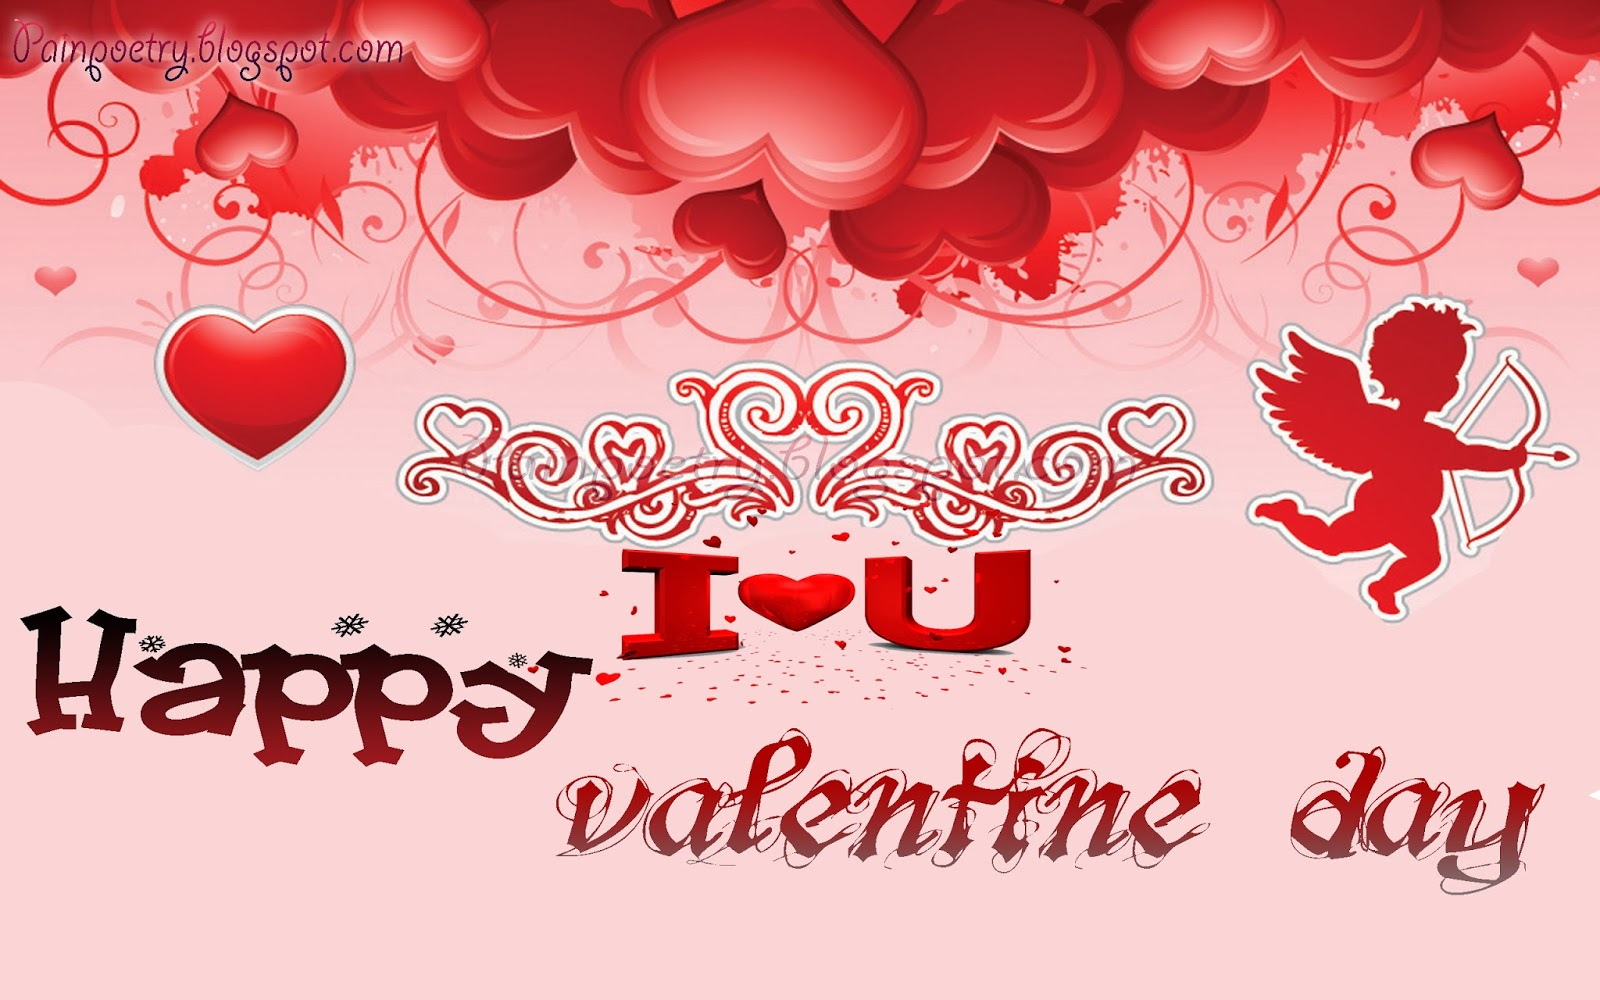 Happy-Valentines-Day-Wishes-Wishes-Walpaper-For-Happy-Valentines-Day-Image-HD-Wide